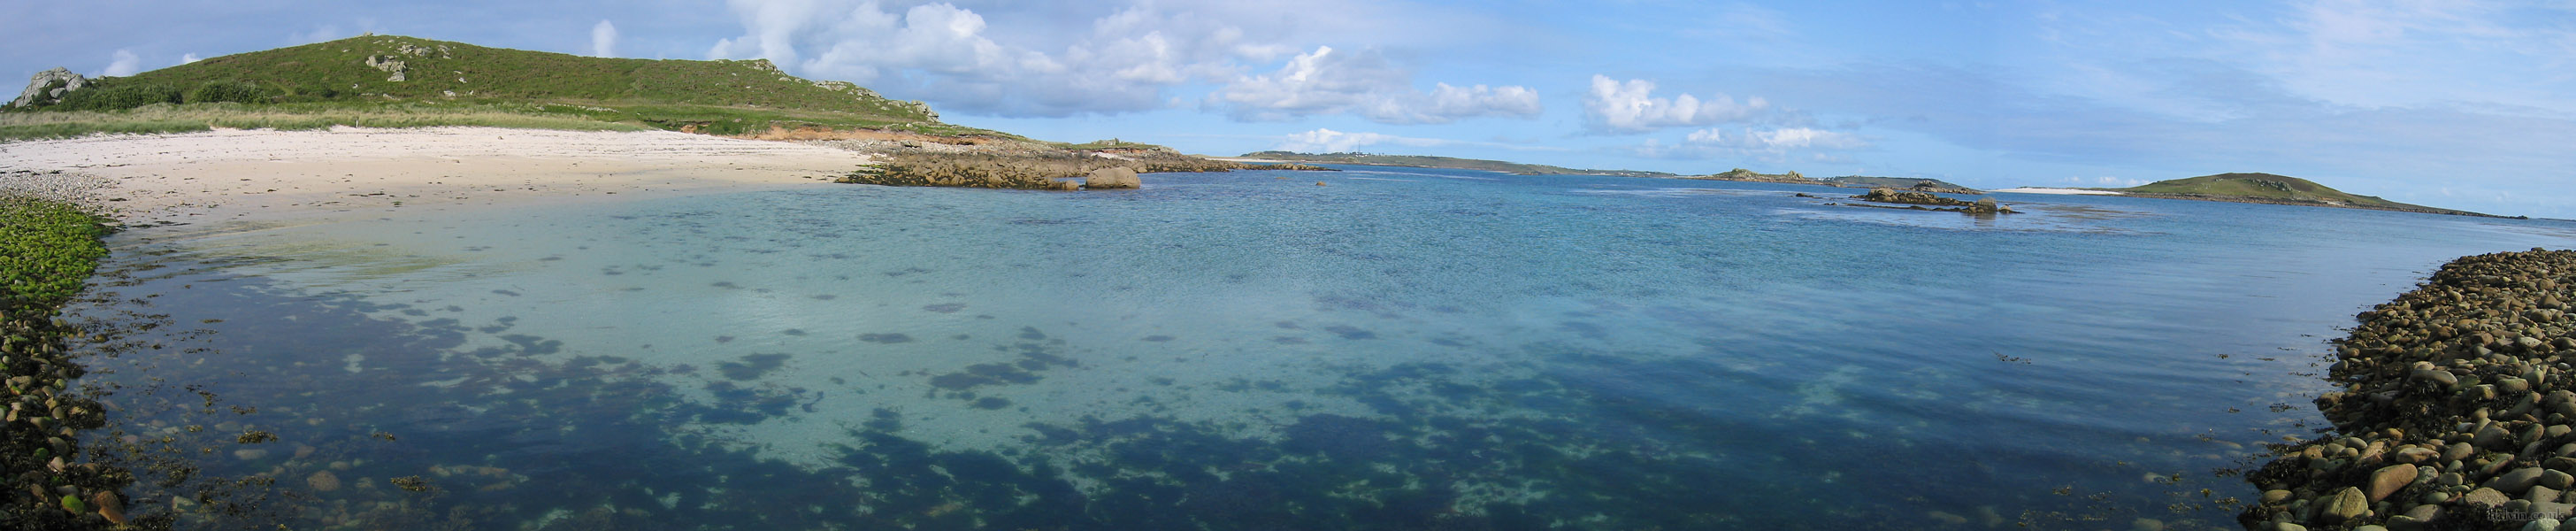 The Isles of Scilly - Bryher Panorama